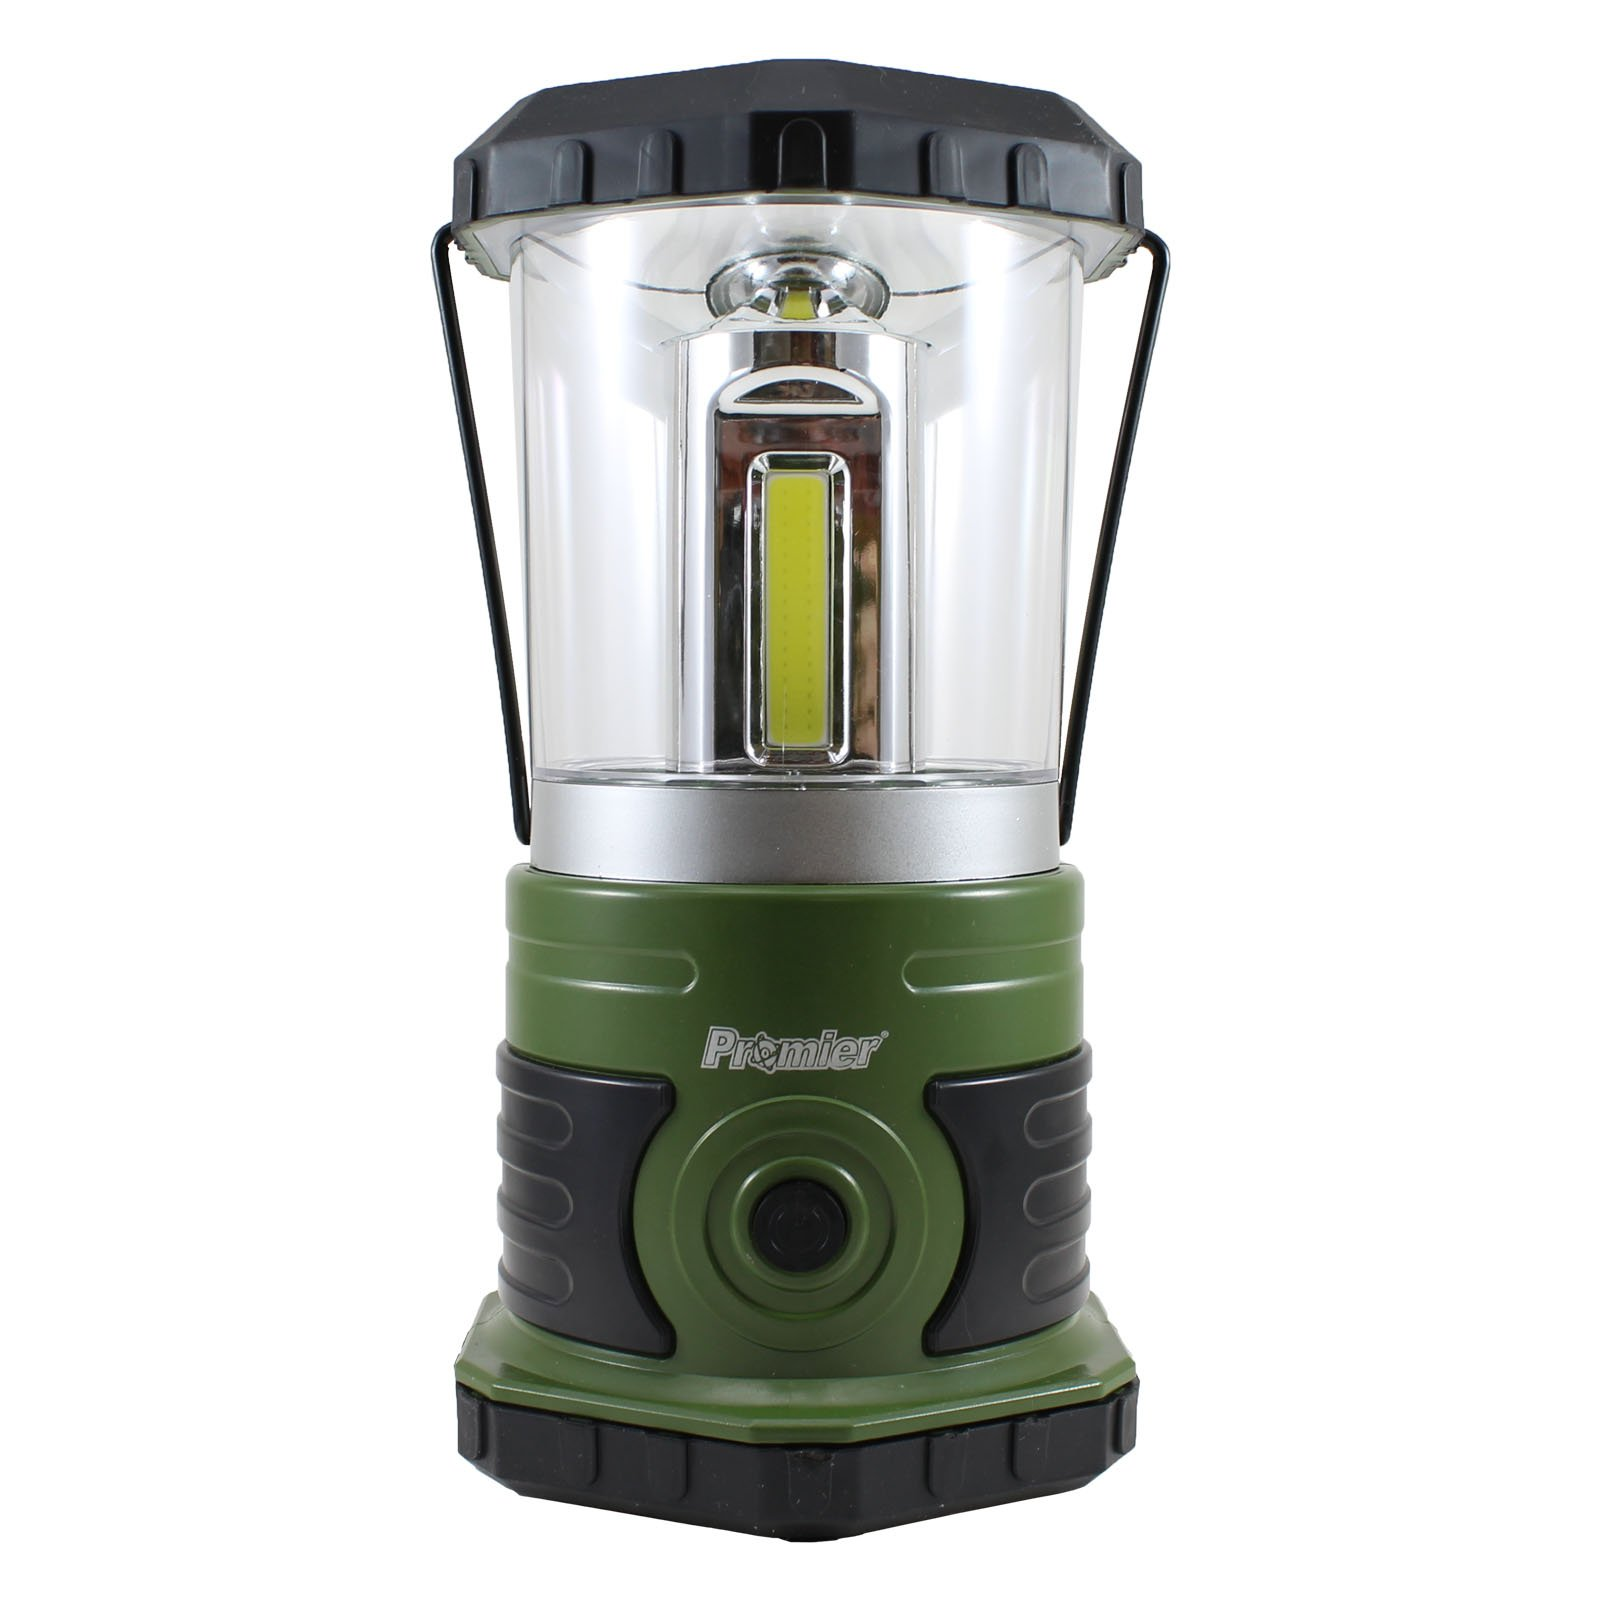 1000 Lumen COB LED Lantern FOR Camping,Workshops, Home, Cabin, or Outbuildings (Good for Extreme Heat or Cold) by Apollo's Products